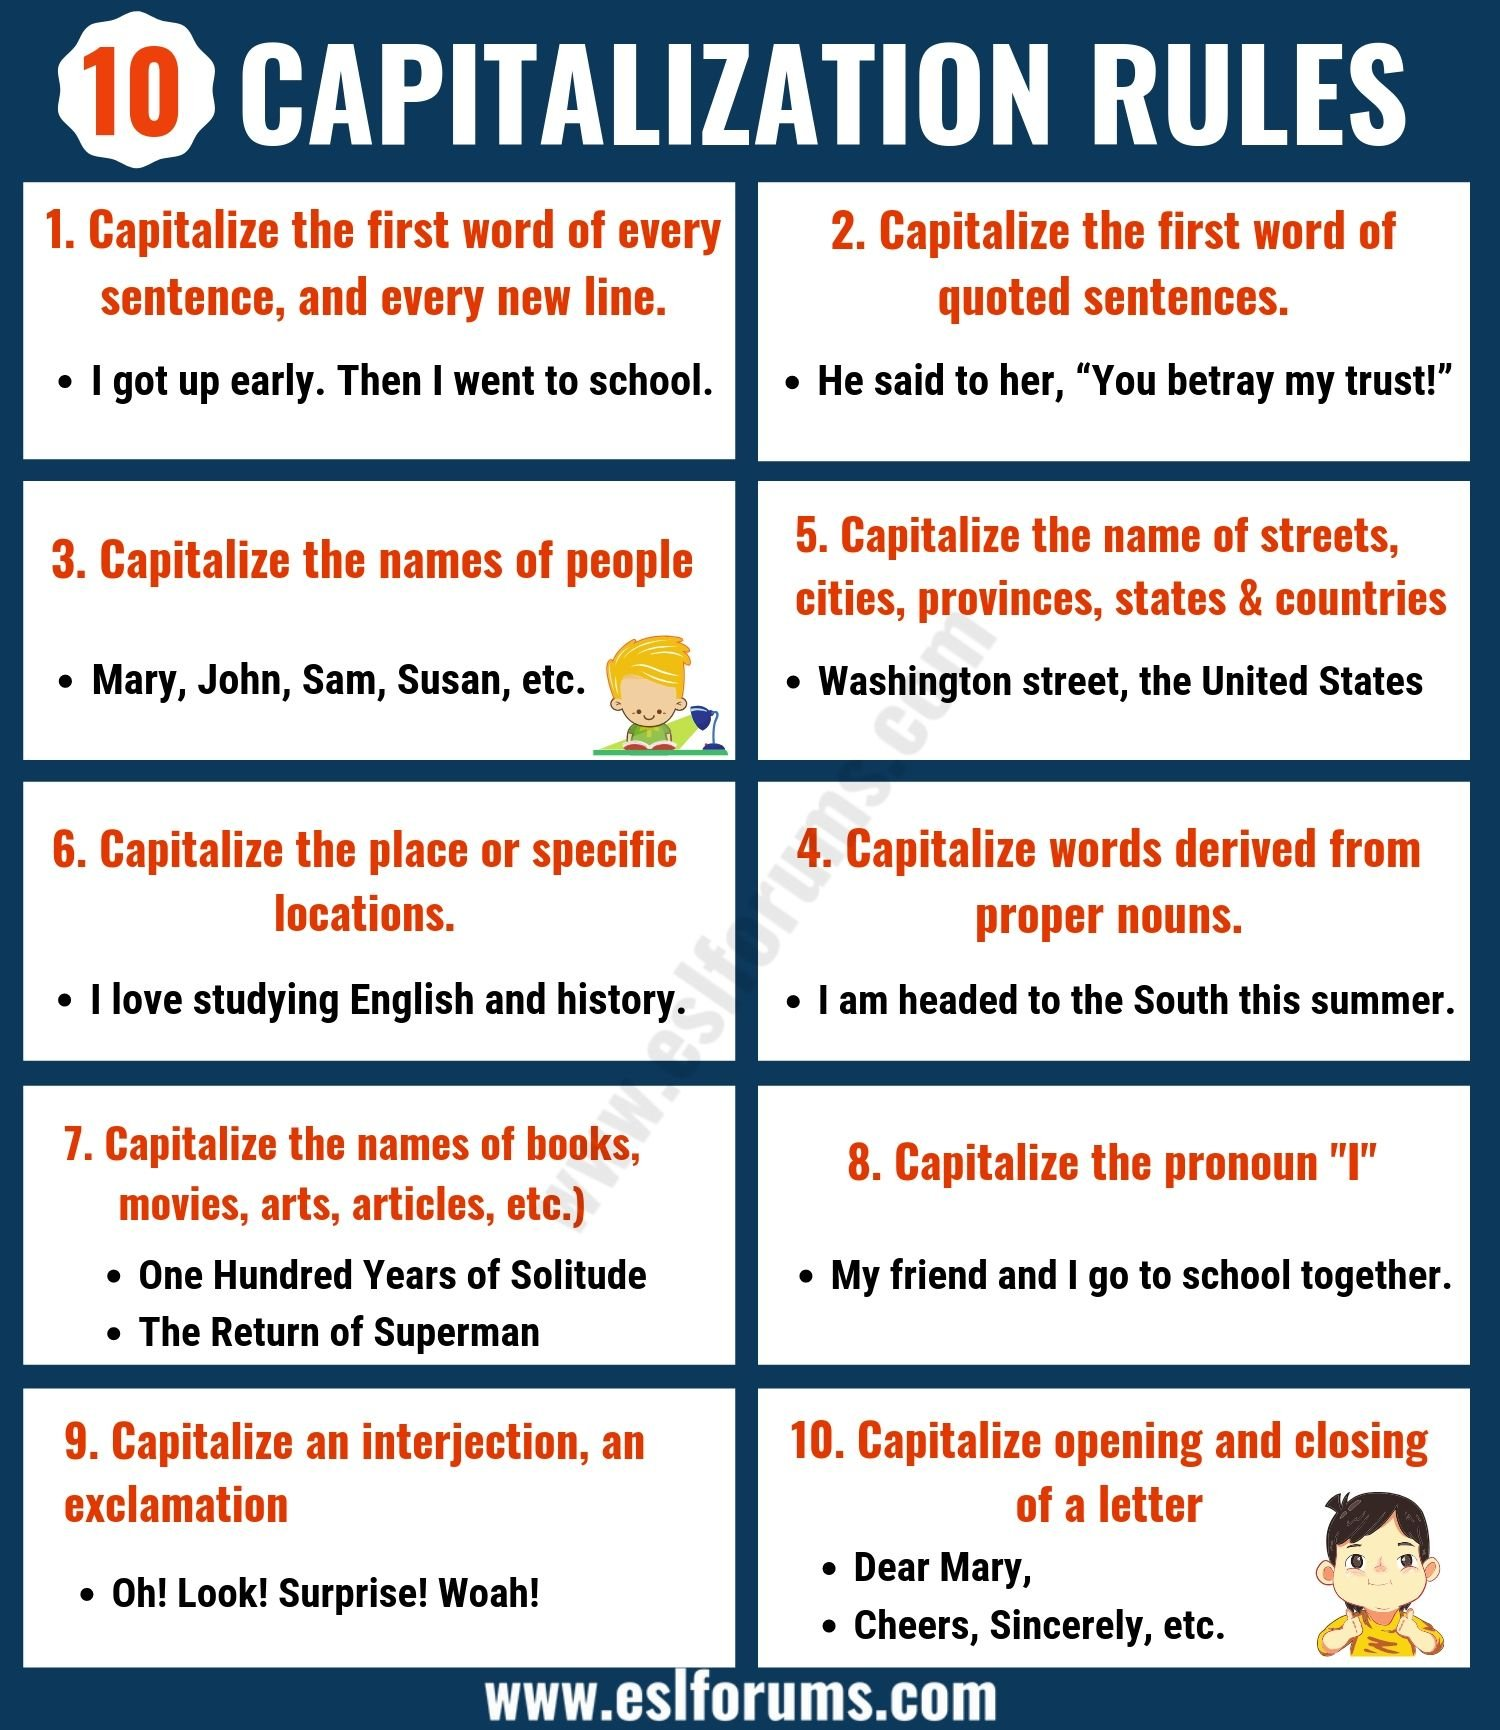 Capitalization Rules: 10 Important Rules for Capitalization of Letters in Written English